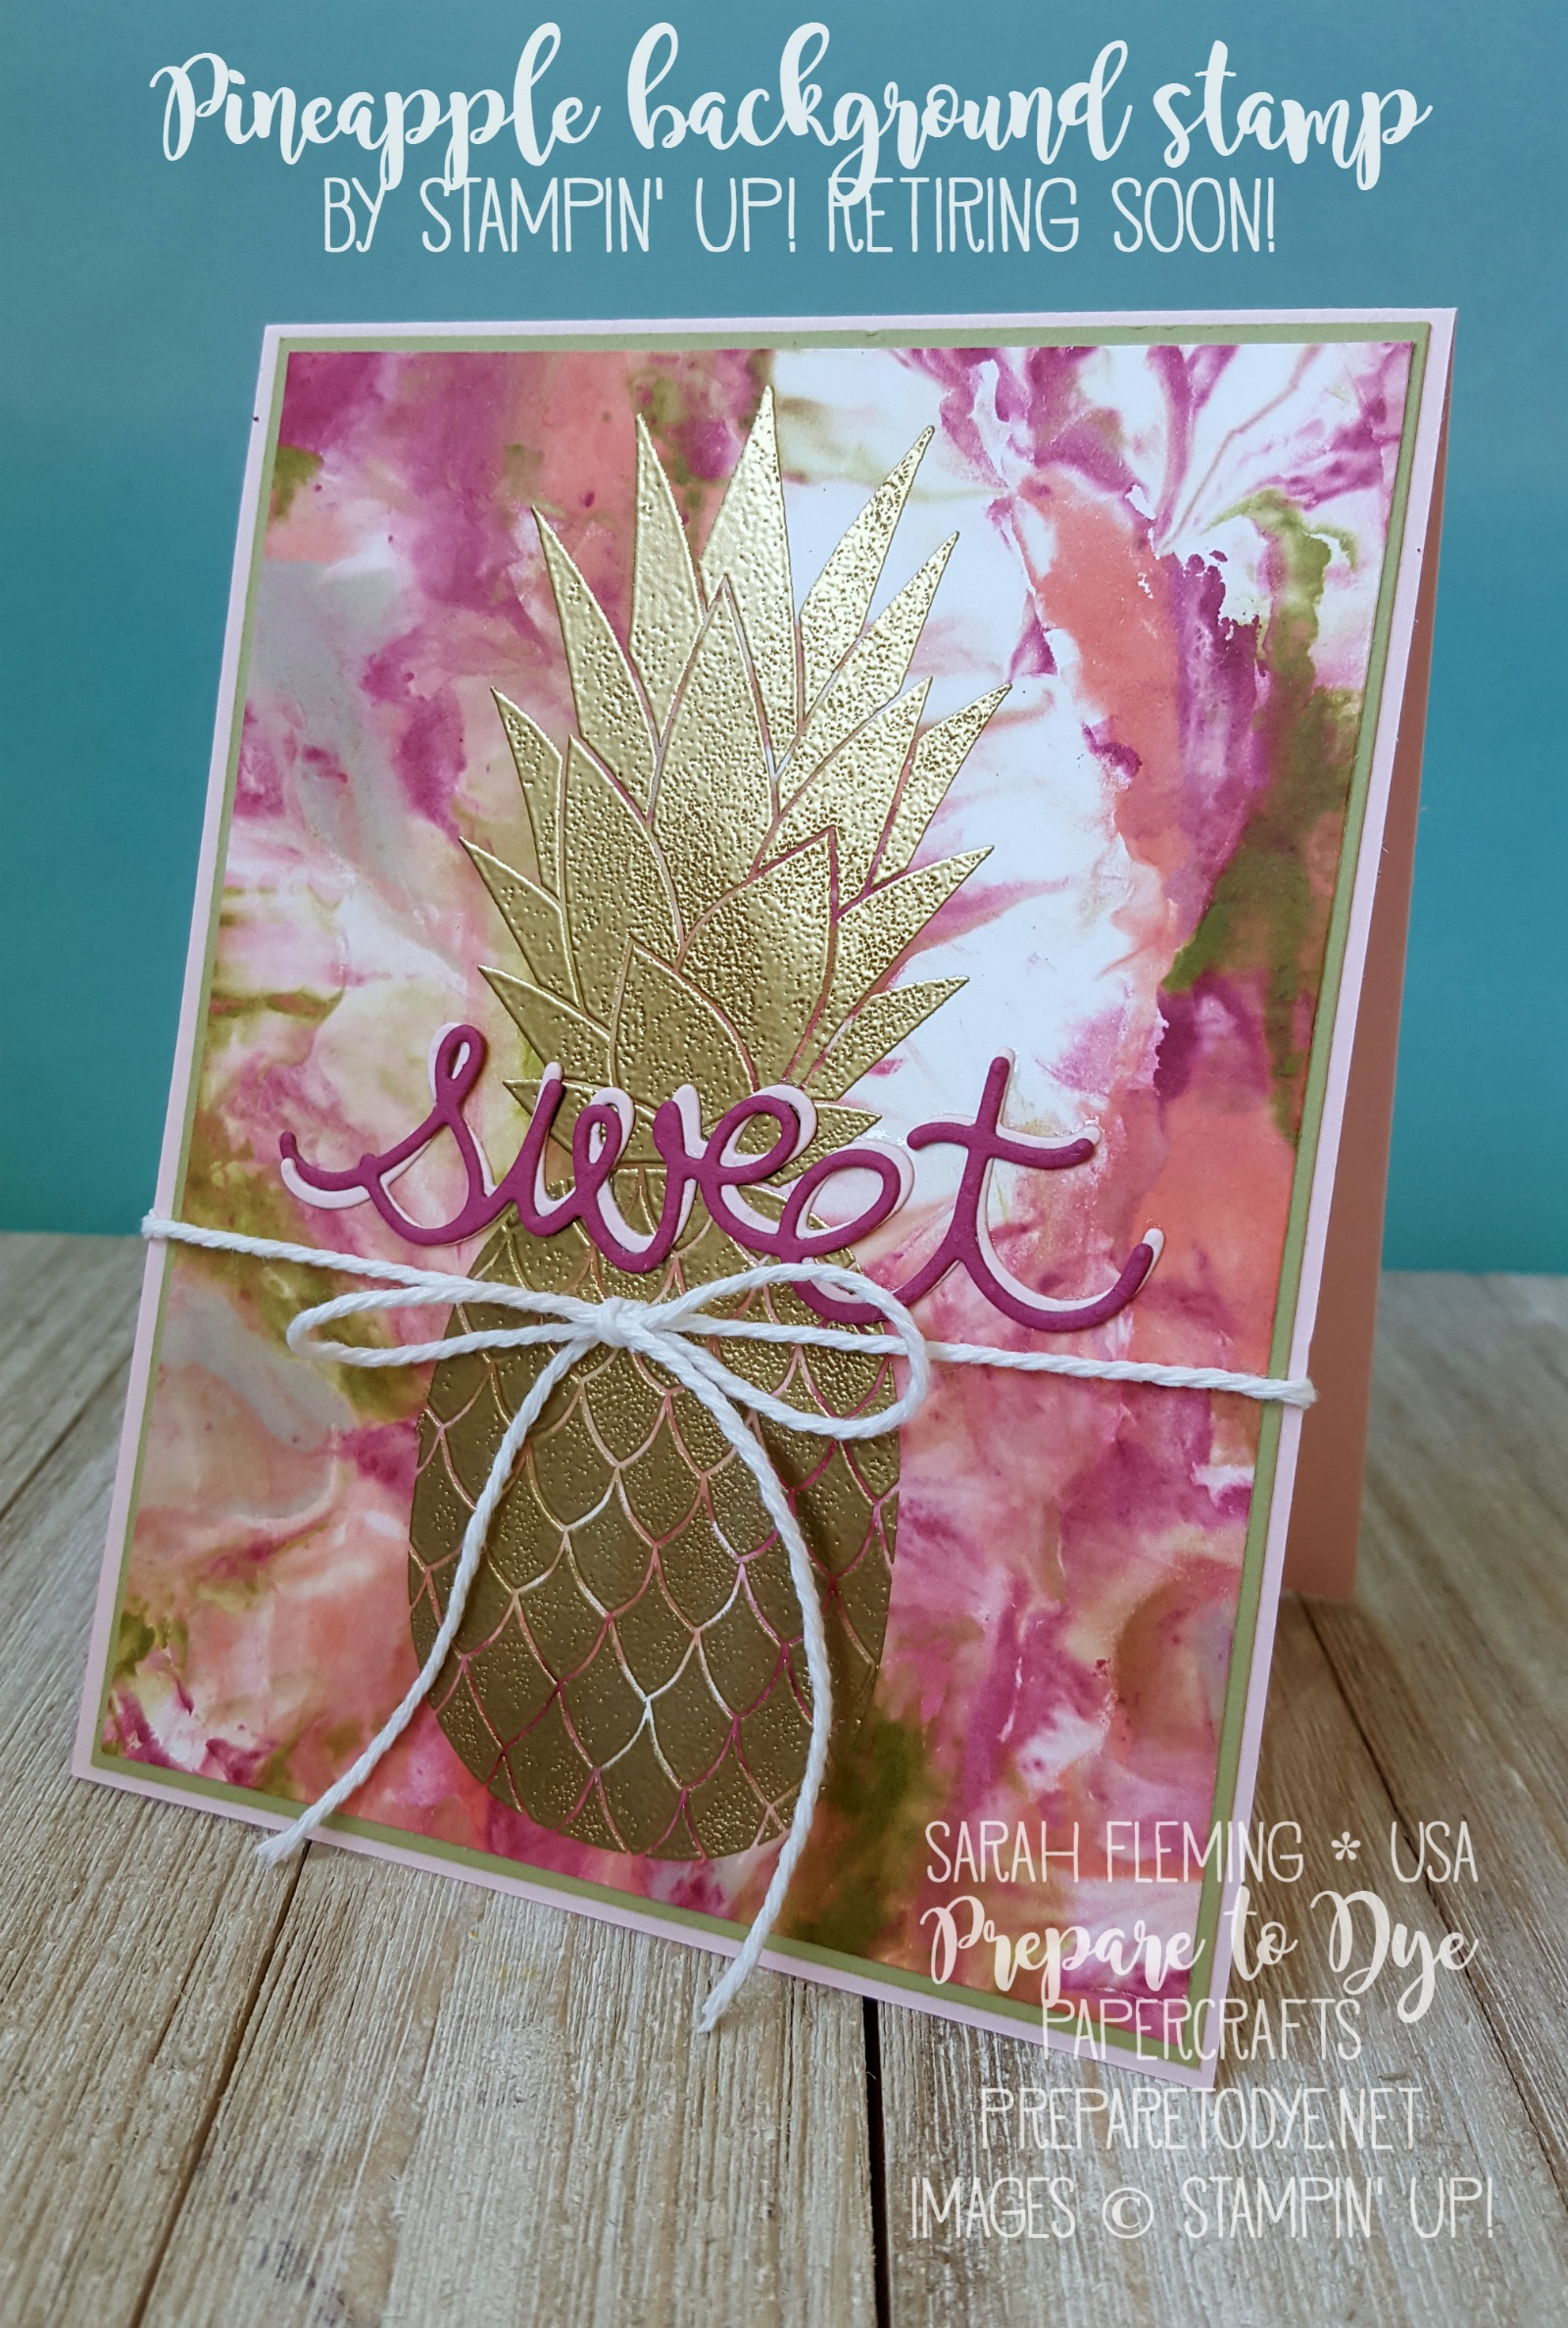 Stampin' Up! Pineapple background stamp with Cupcake Cutouts framelits and shaving cream background - Splitcoast Stampers Creative Crew - Sarah Fleming - Prepare to Dye Papercrafts